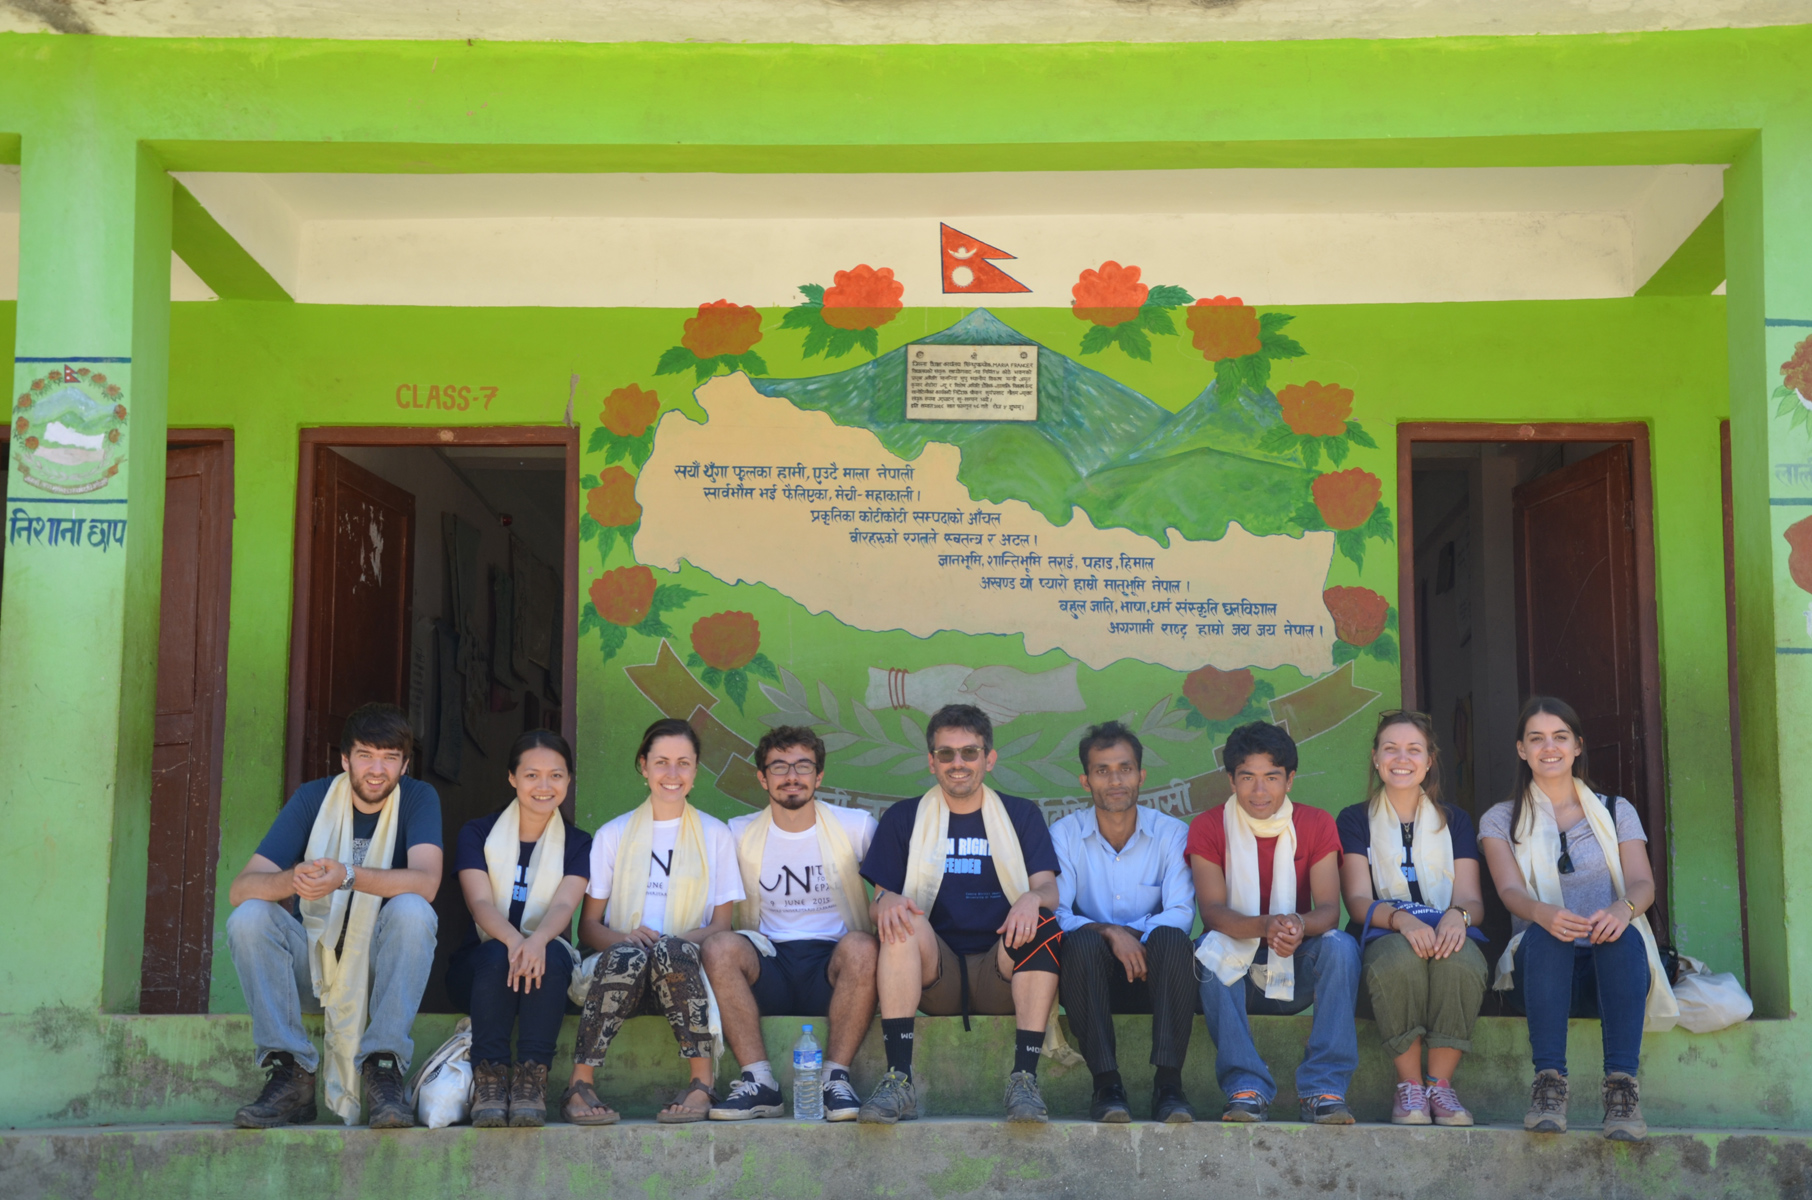 Shree Koldaung Devi Secundary School (Meshipa, Sindhupalchok), students and professor